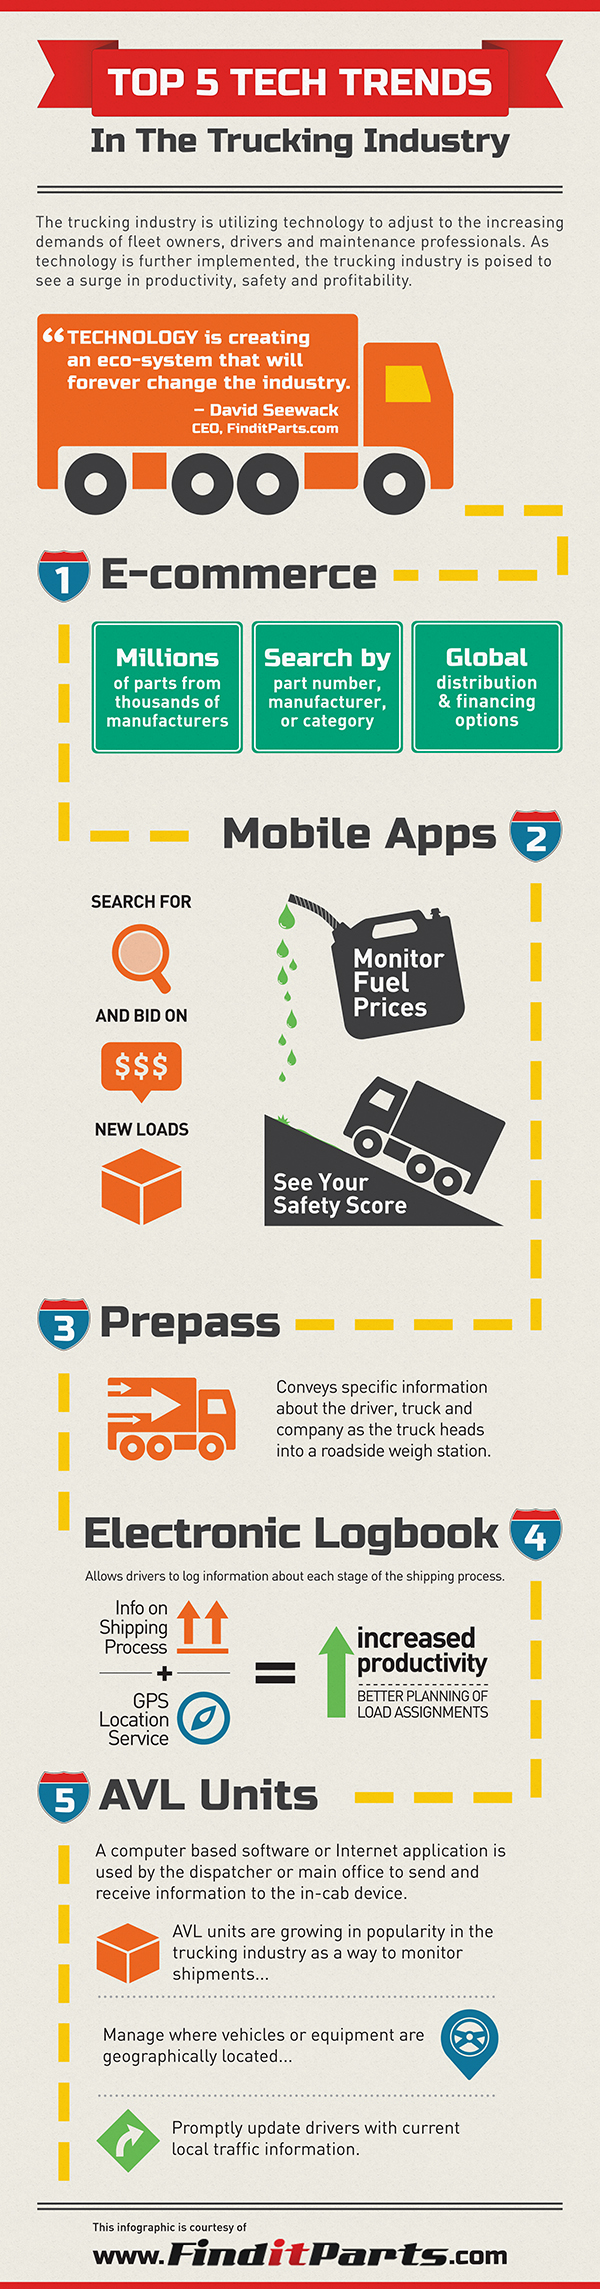 Top 5 Ways Technology is Changing the Trucking Industry_Infographic_Web